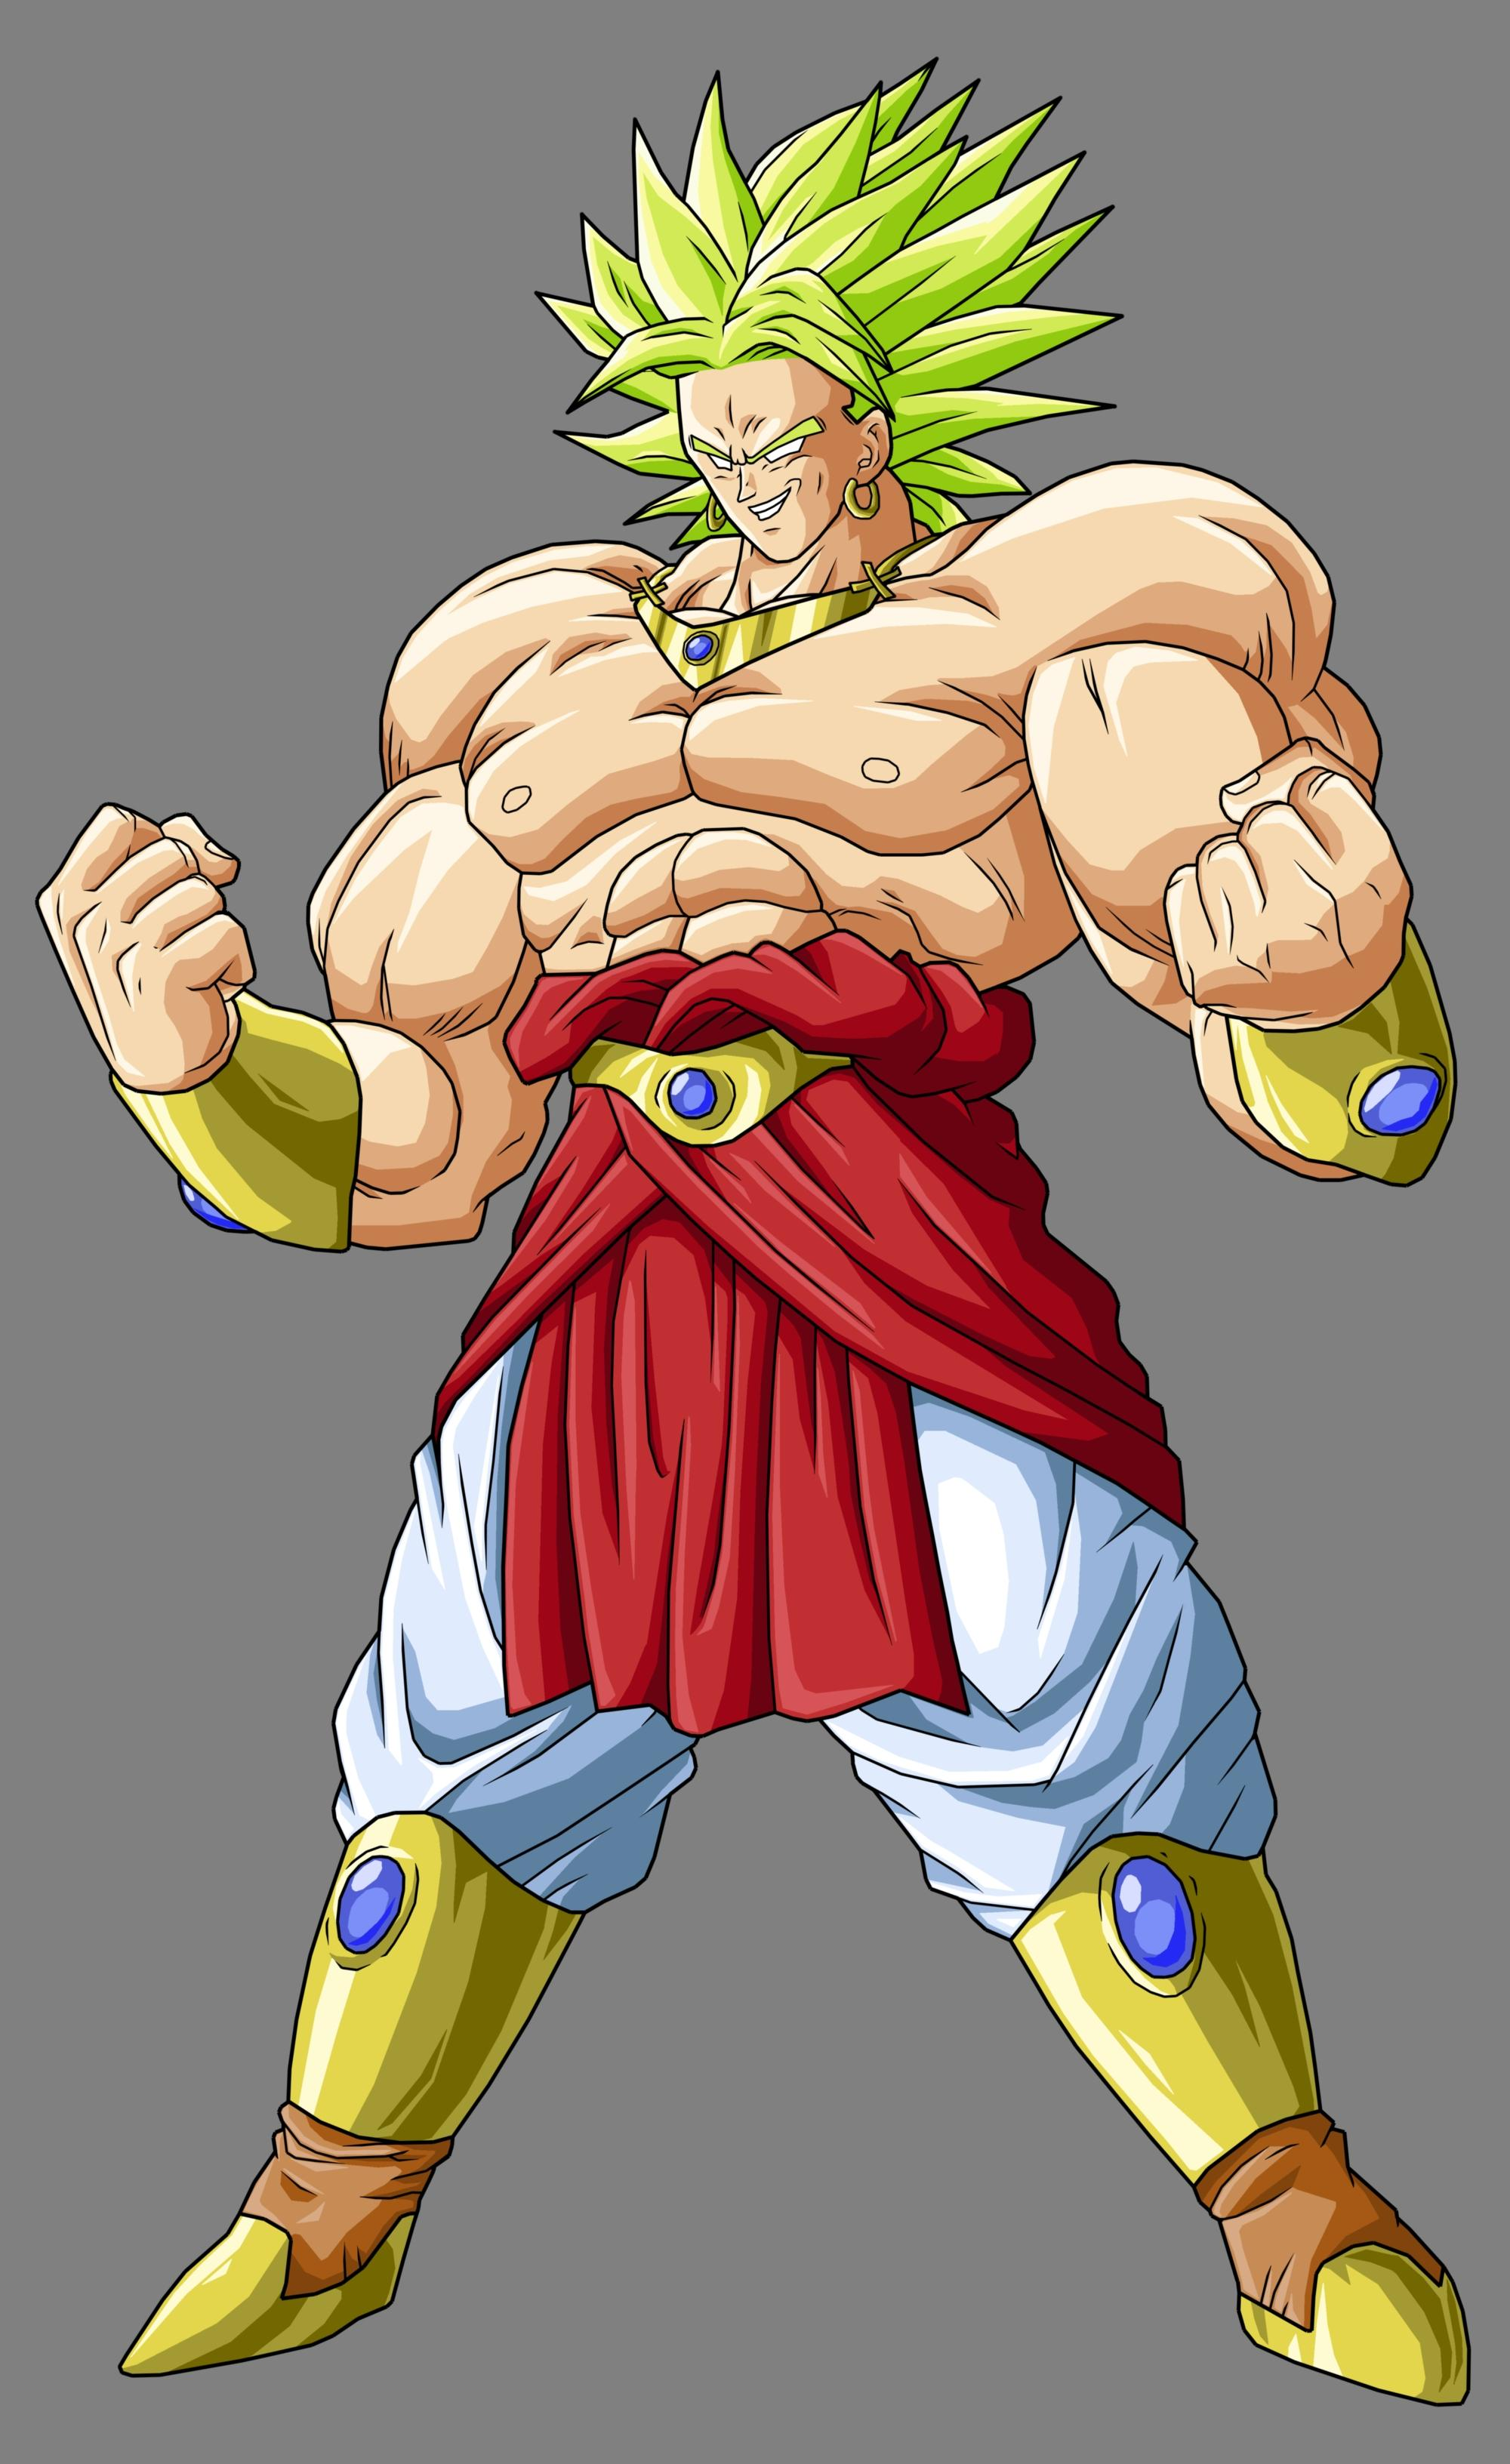 Bio broly dreager1 39 s blog - Broly dragon ball gt ...